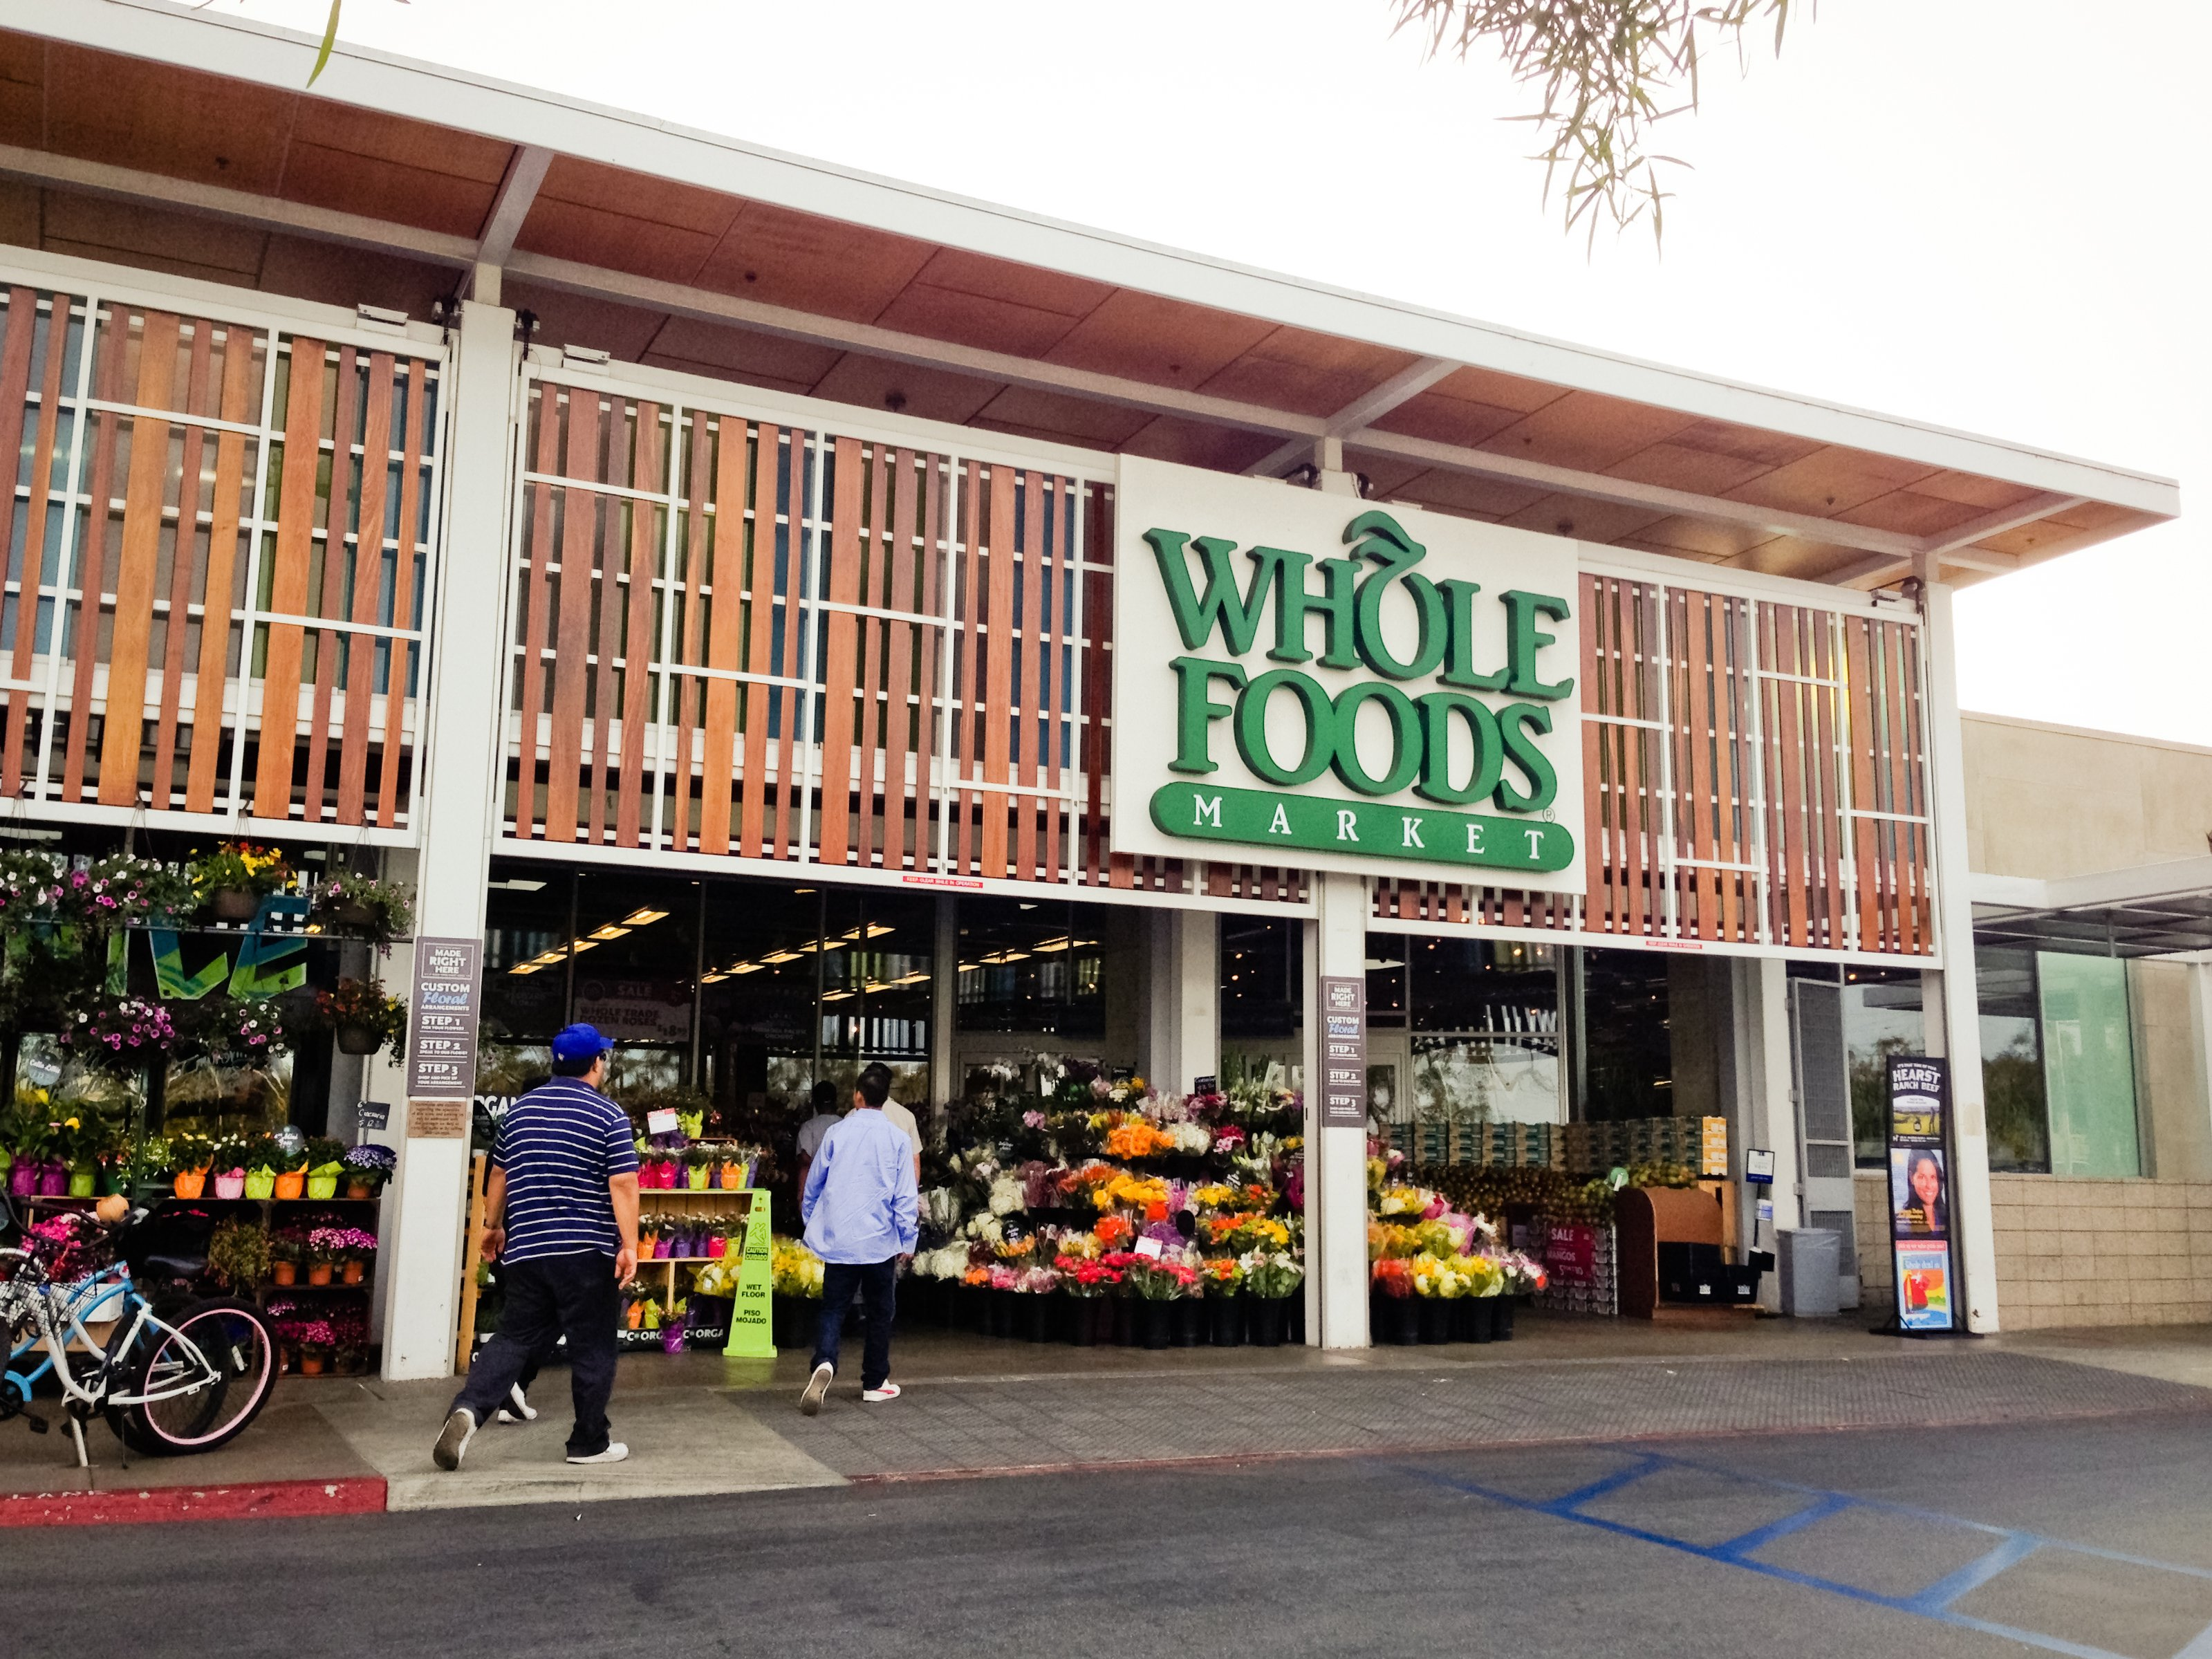 technologyreview.com - Mike Orcutt - You can now pay with cryptocurrency at Whole Foods